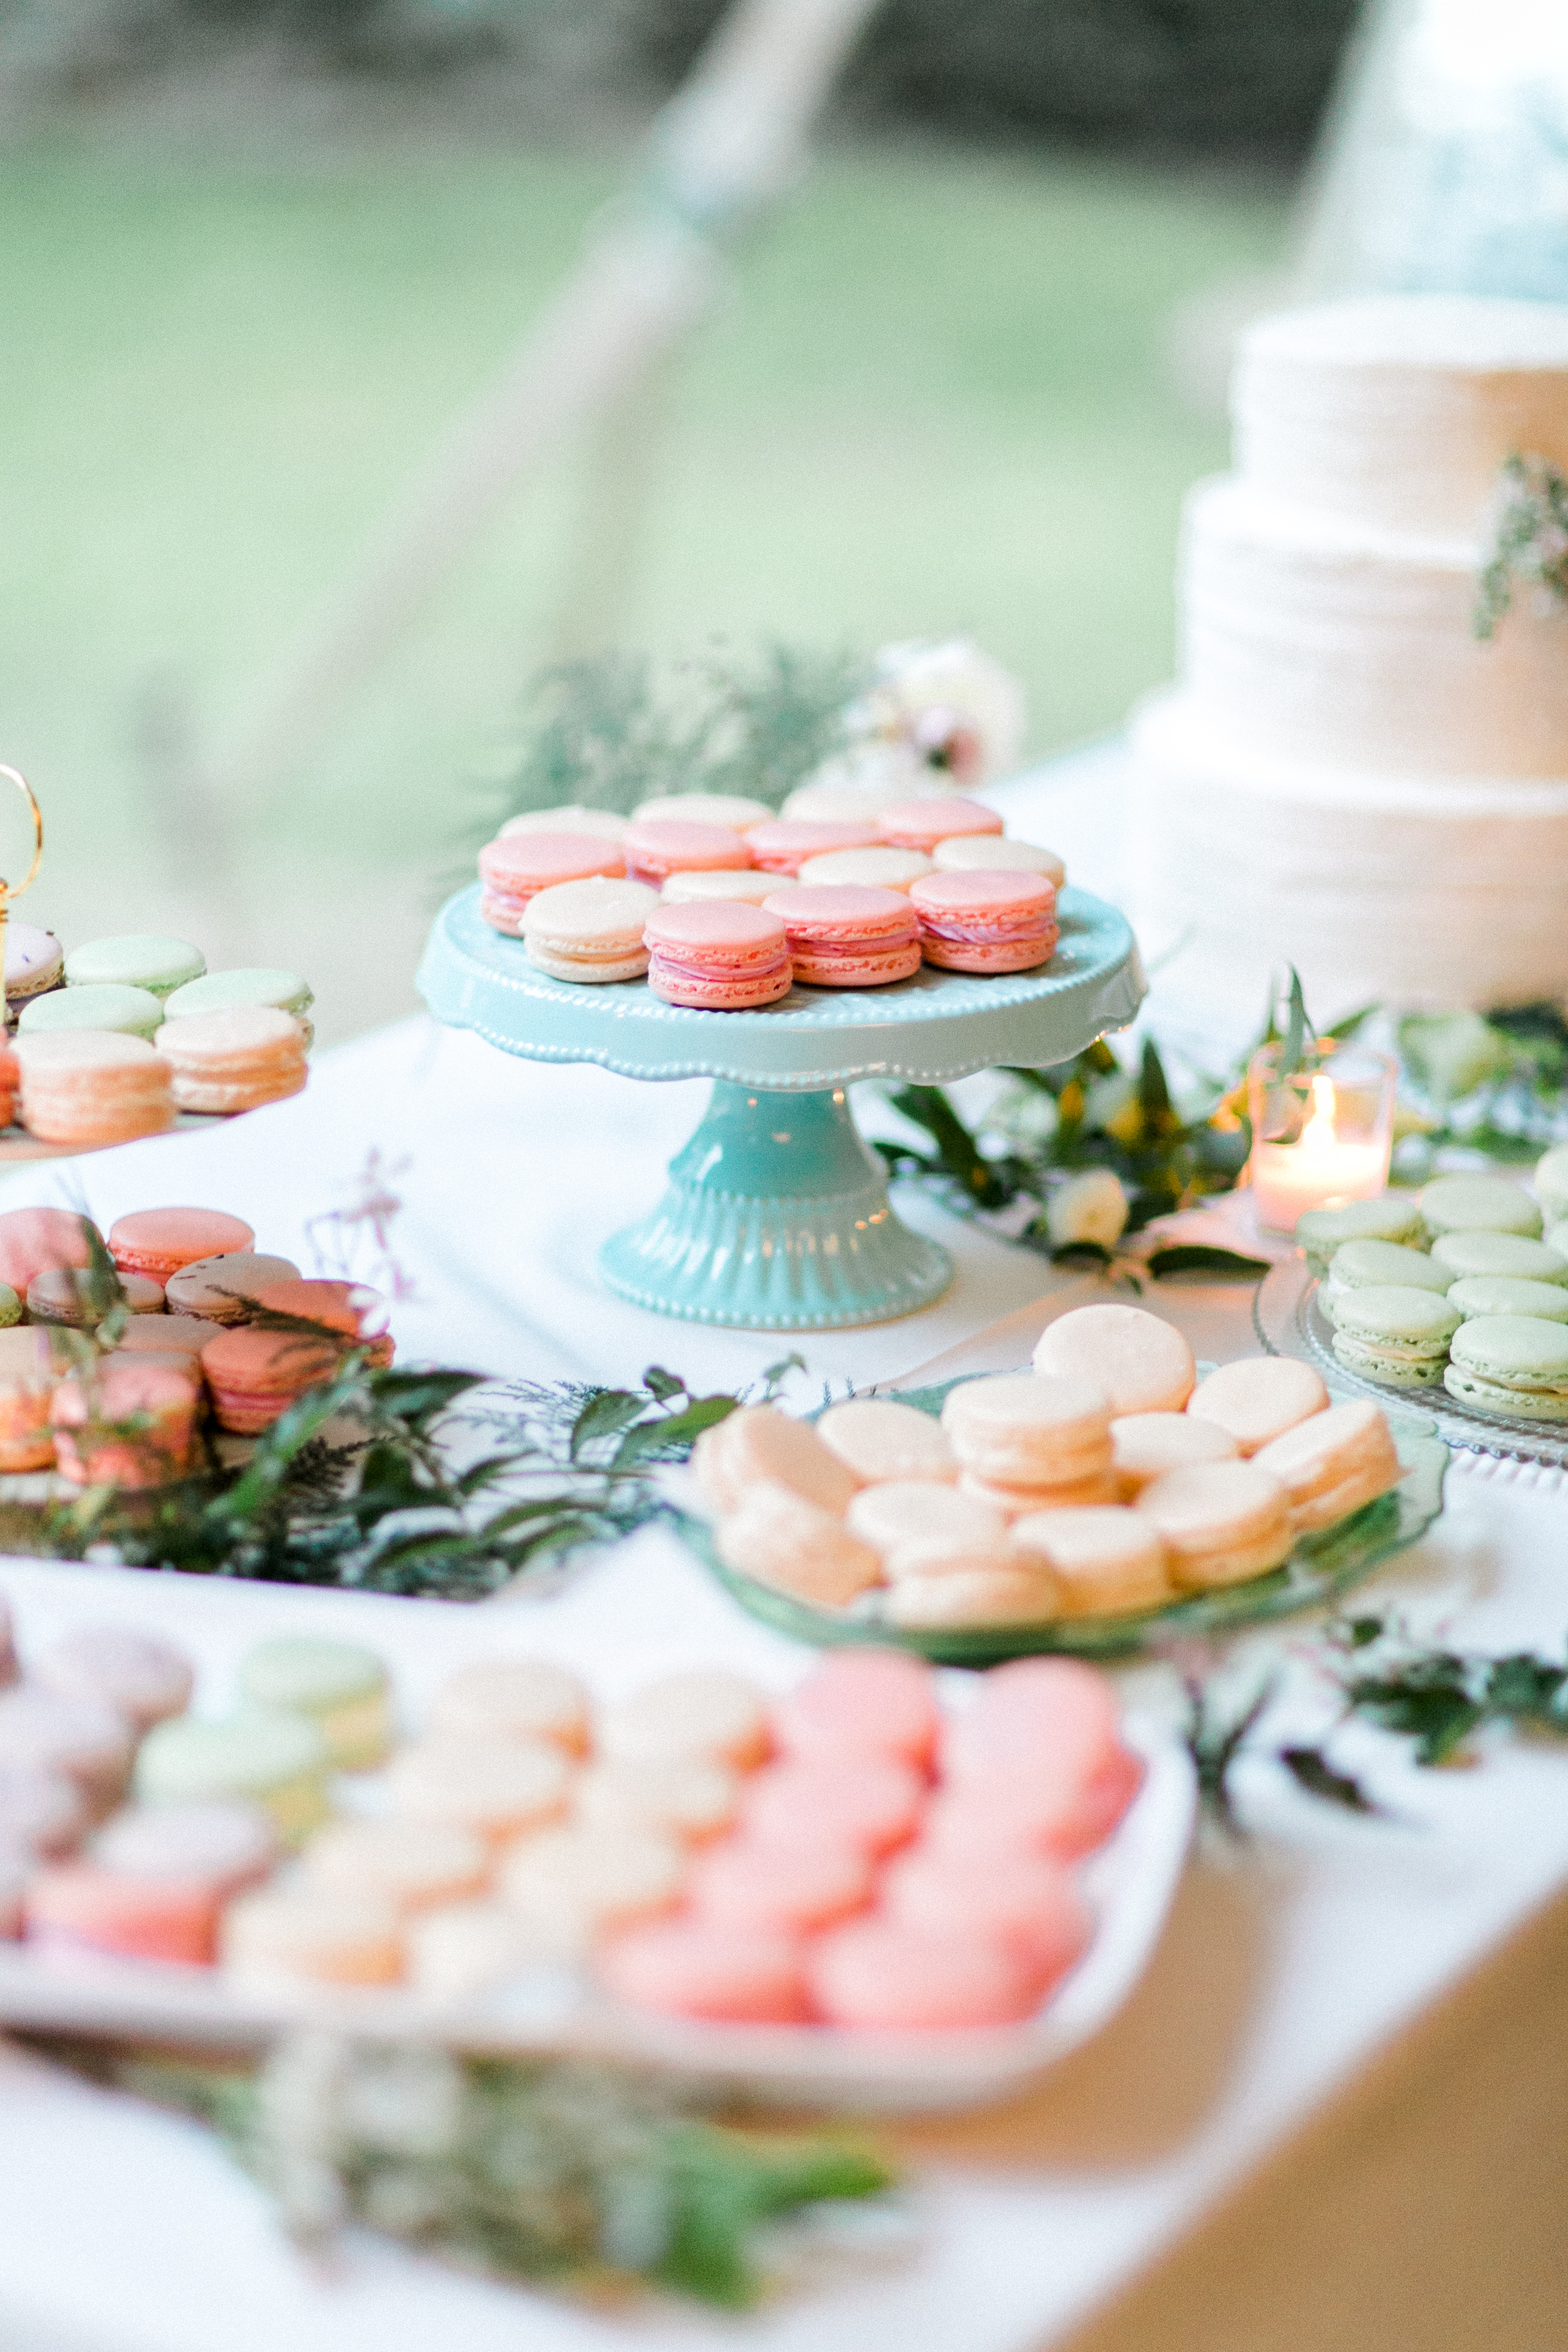 multicolored macarons on a dessert table